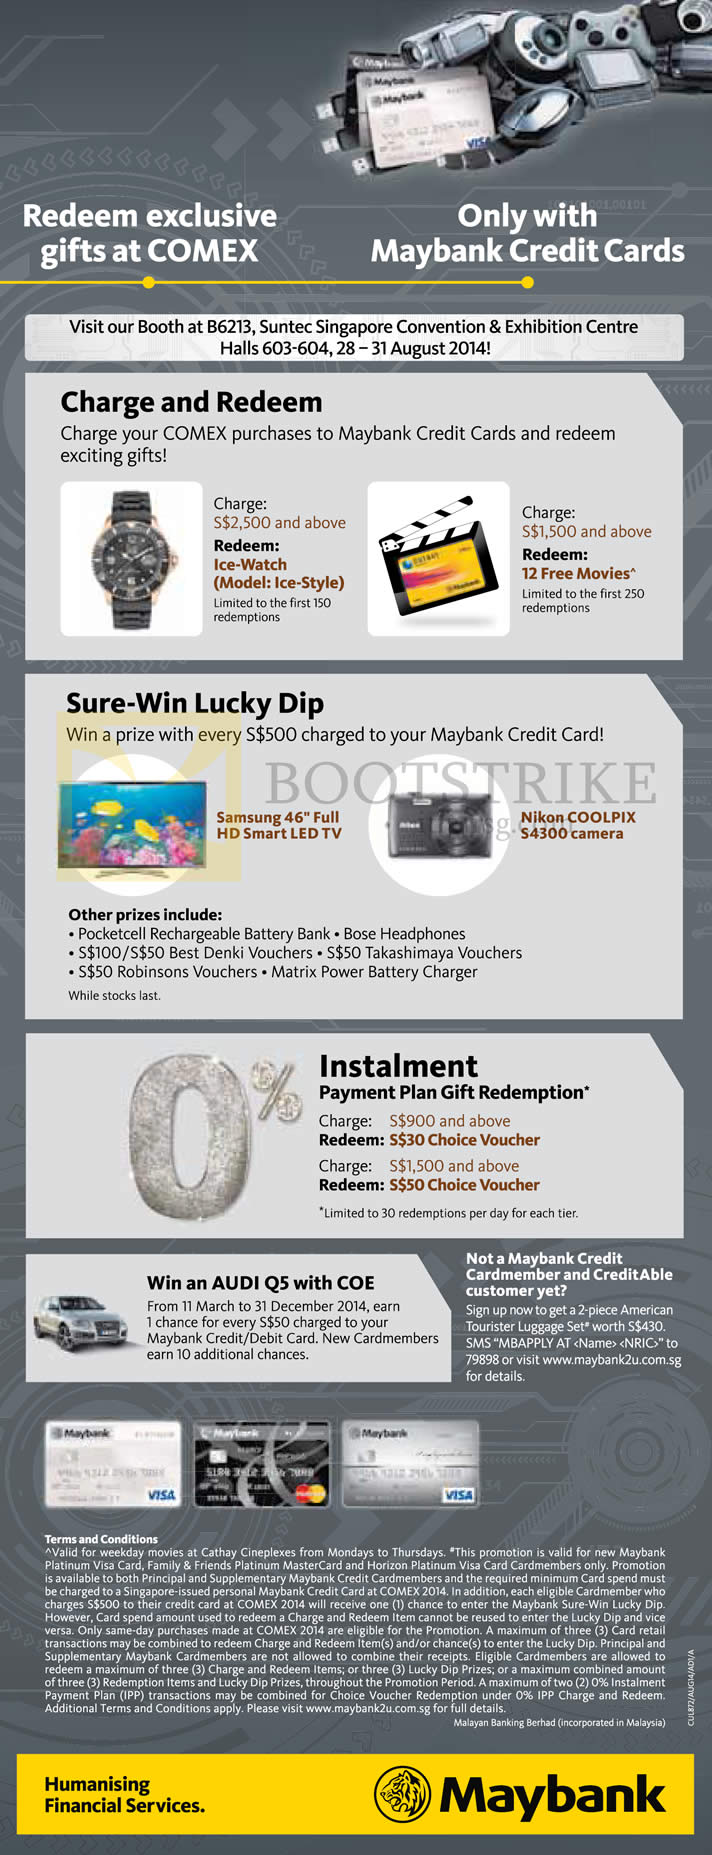 COMEX 2014 price list image brochure of Maybank Charge N Redeem, Sure-Win Lucky Dip, Instalment Payment Plan Gift Redemption